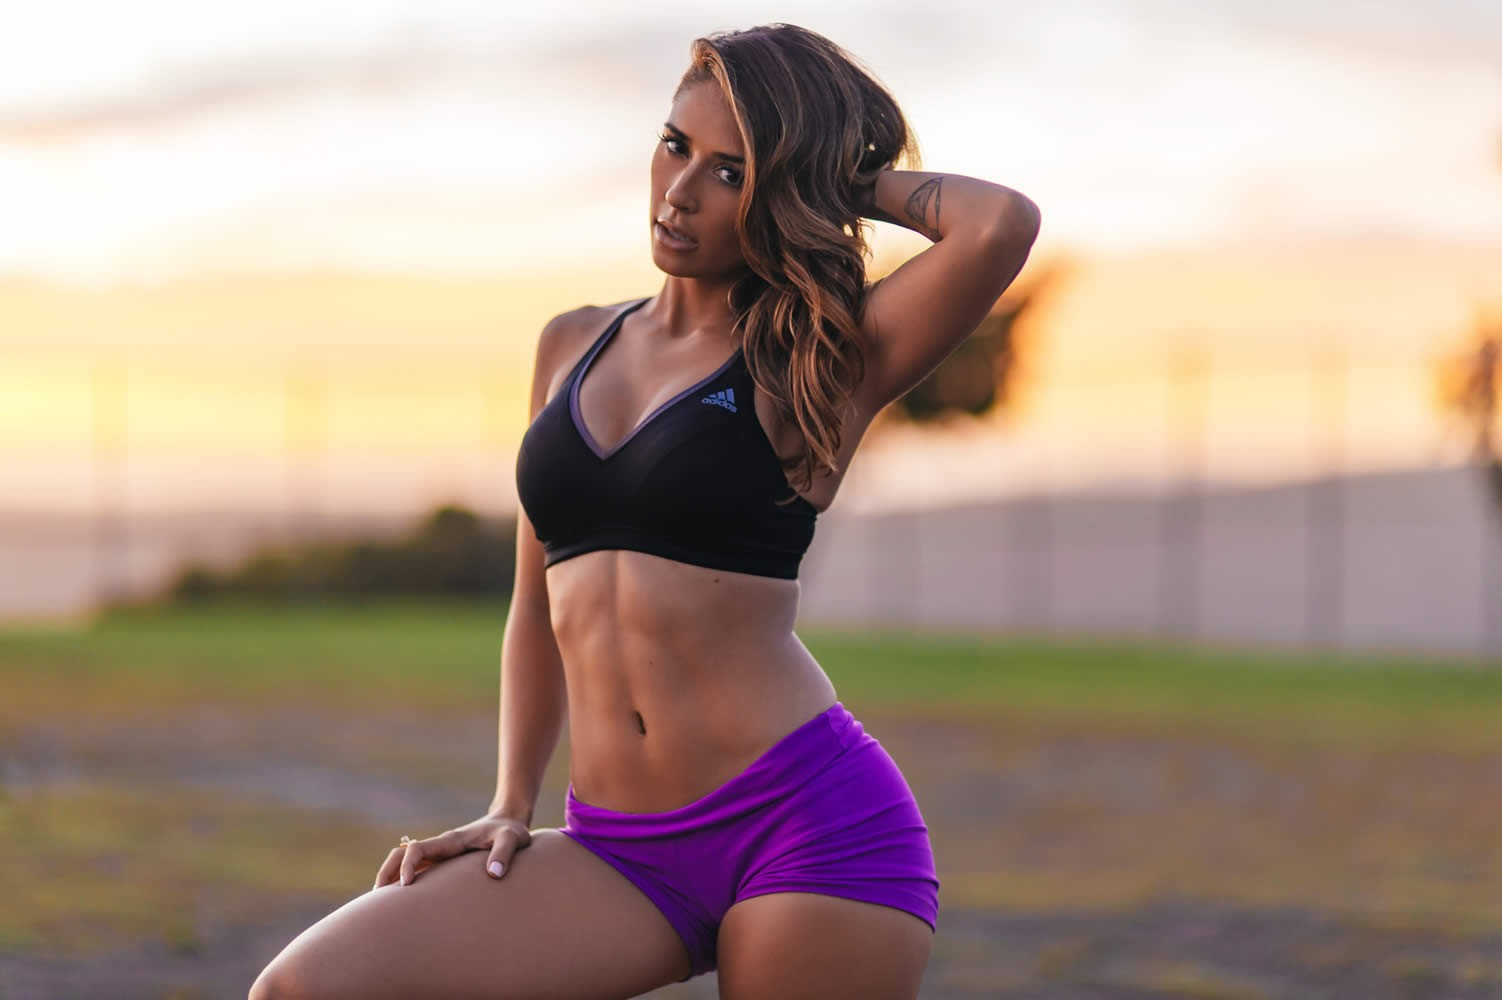 Tianna Gregory Images